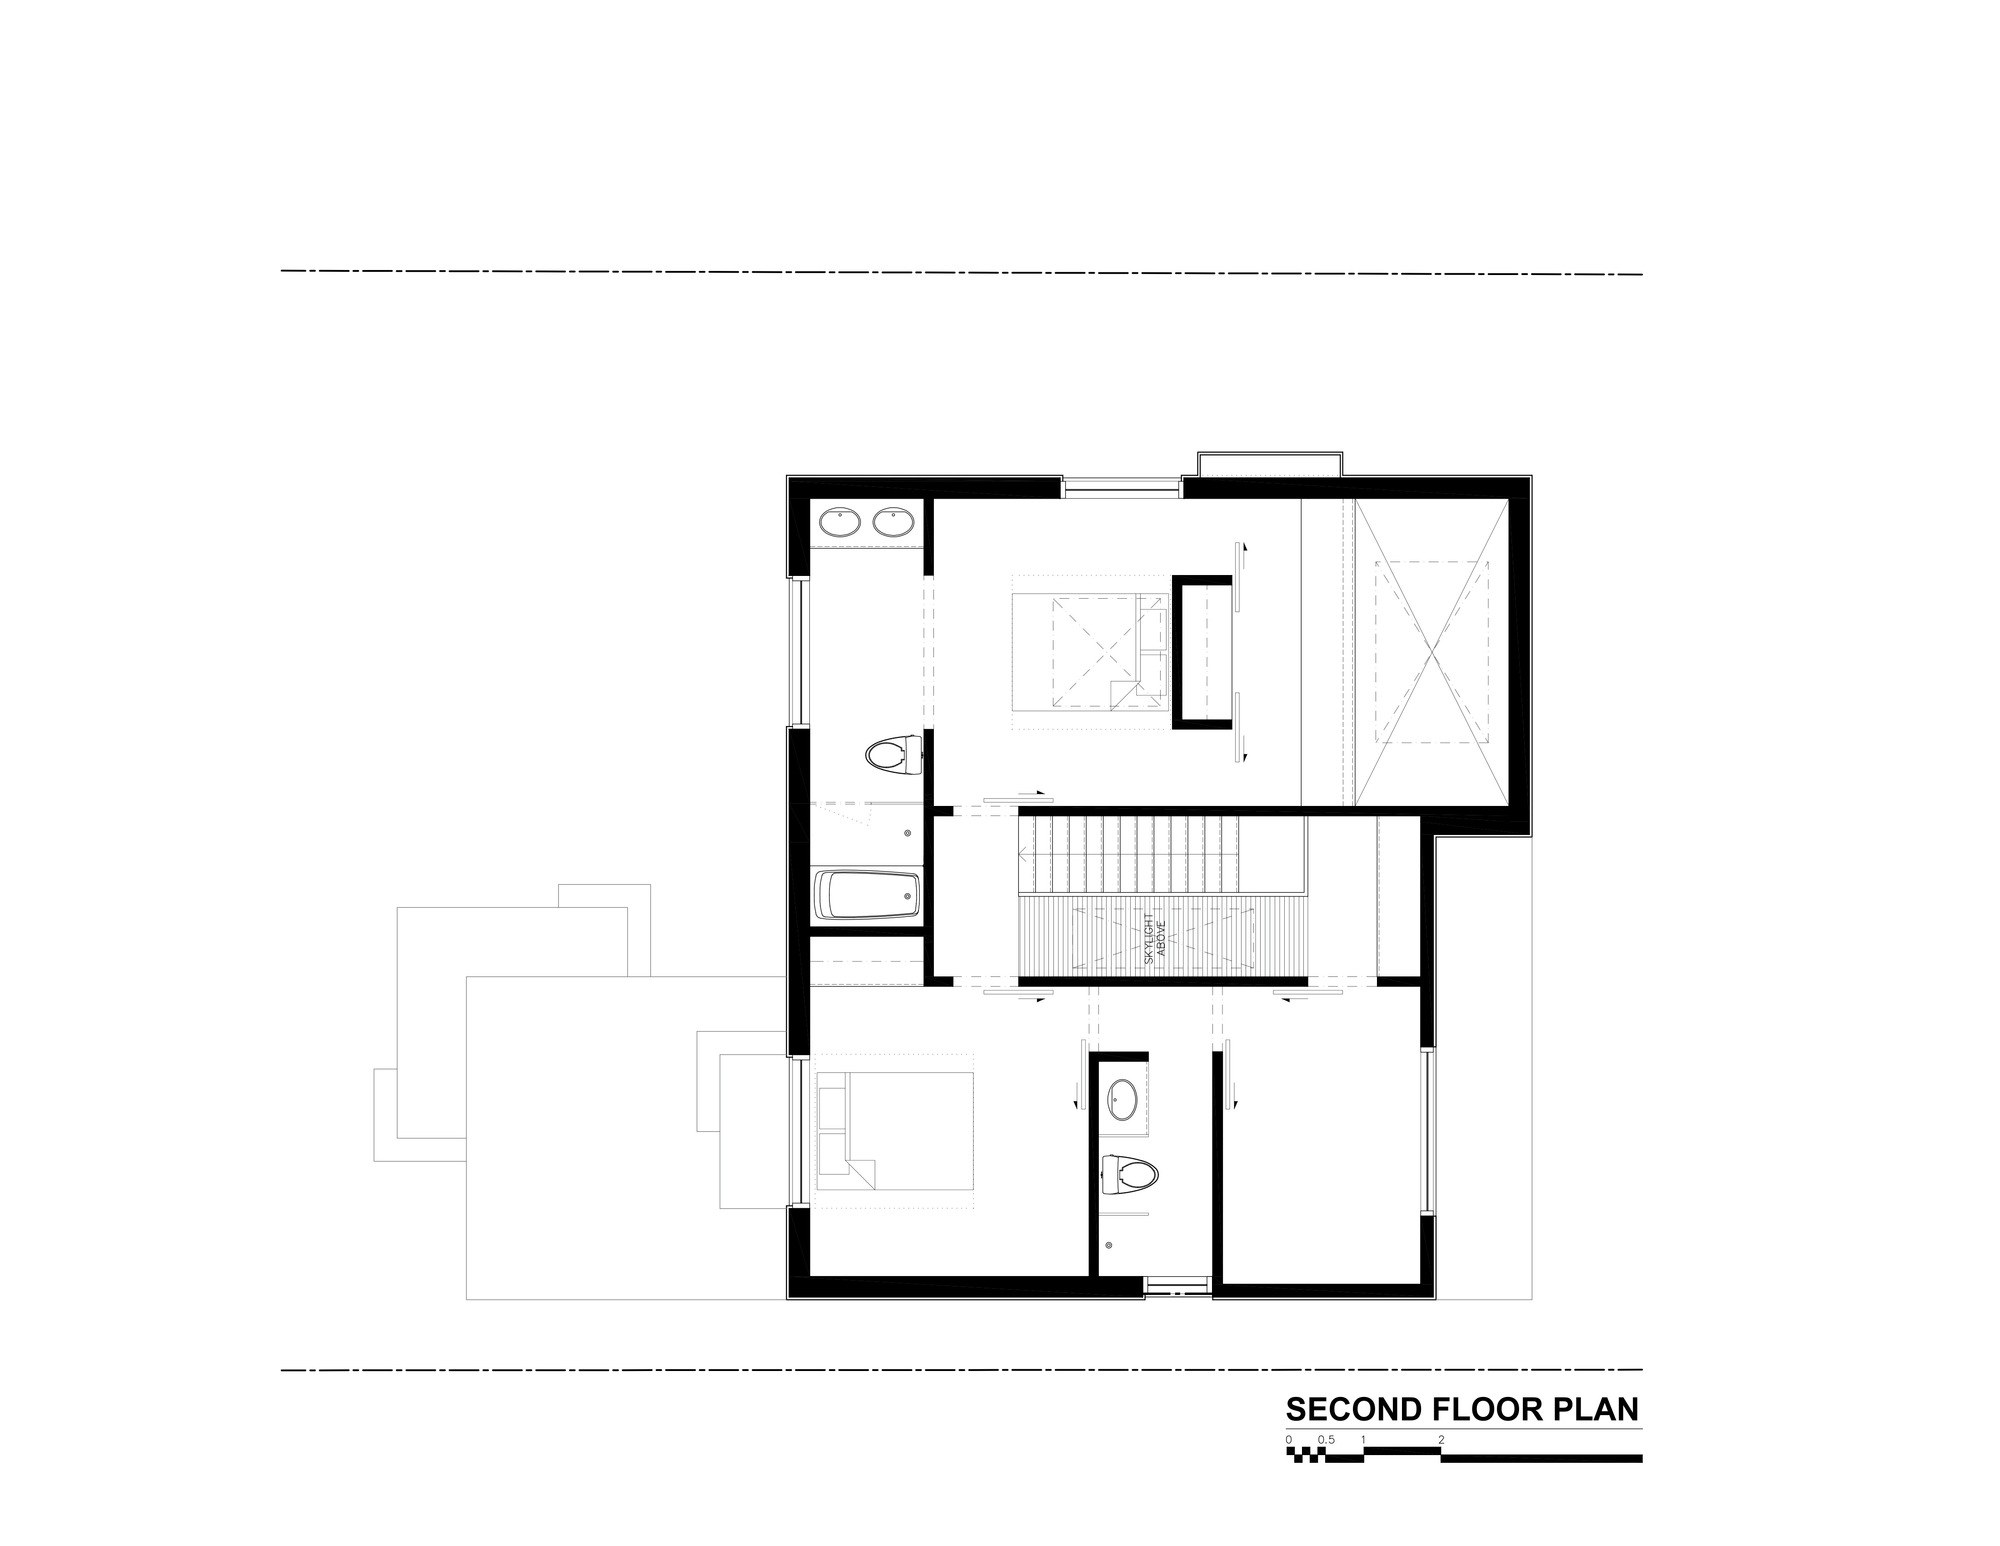 Gallery of thorax house rzlbd 14 for Second floor plans home